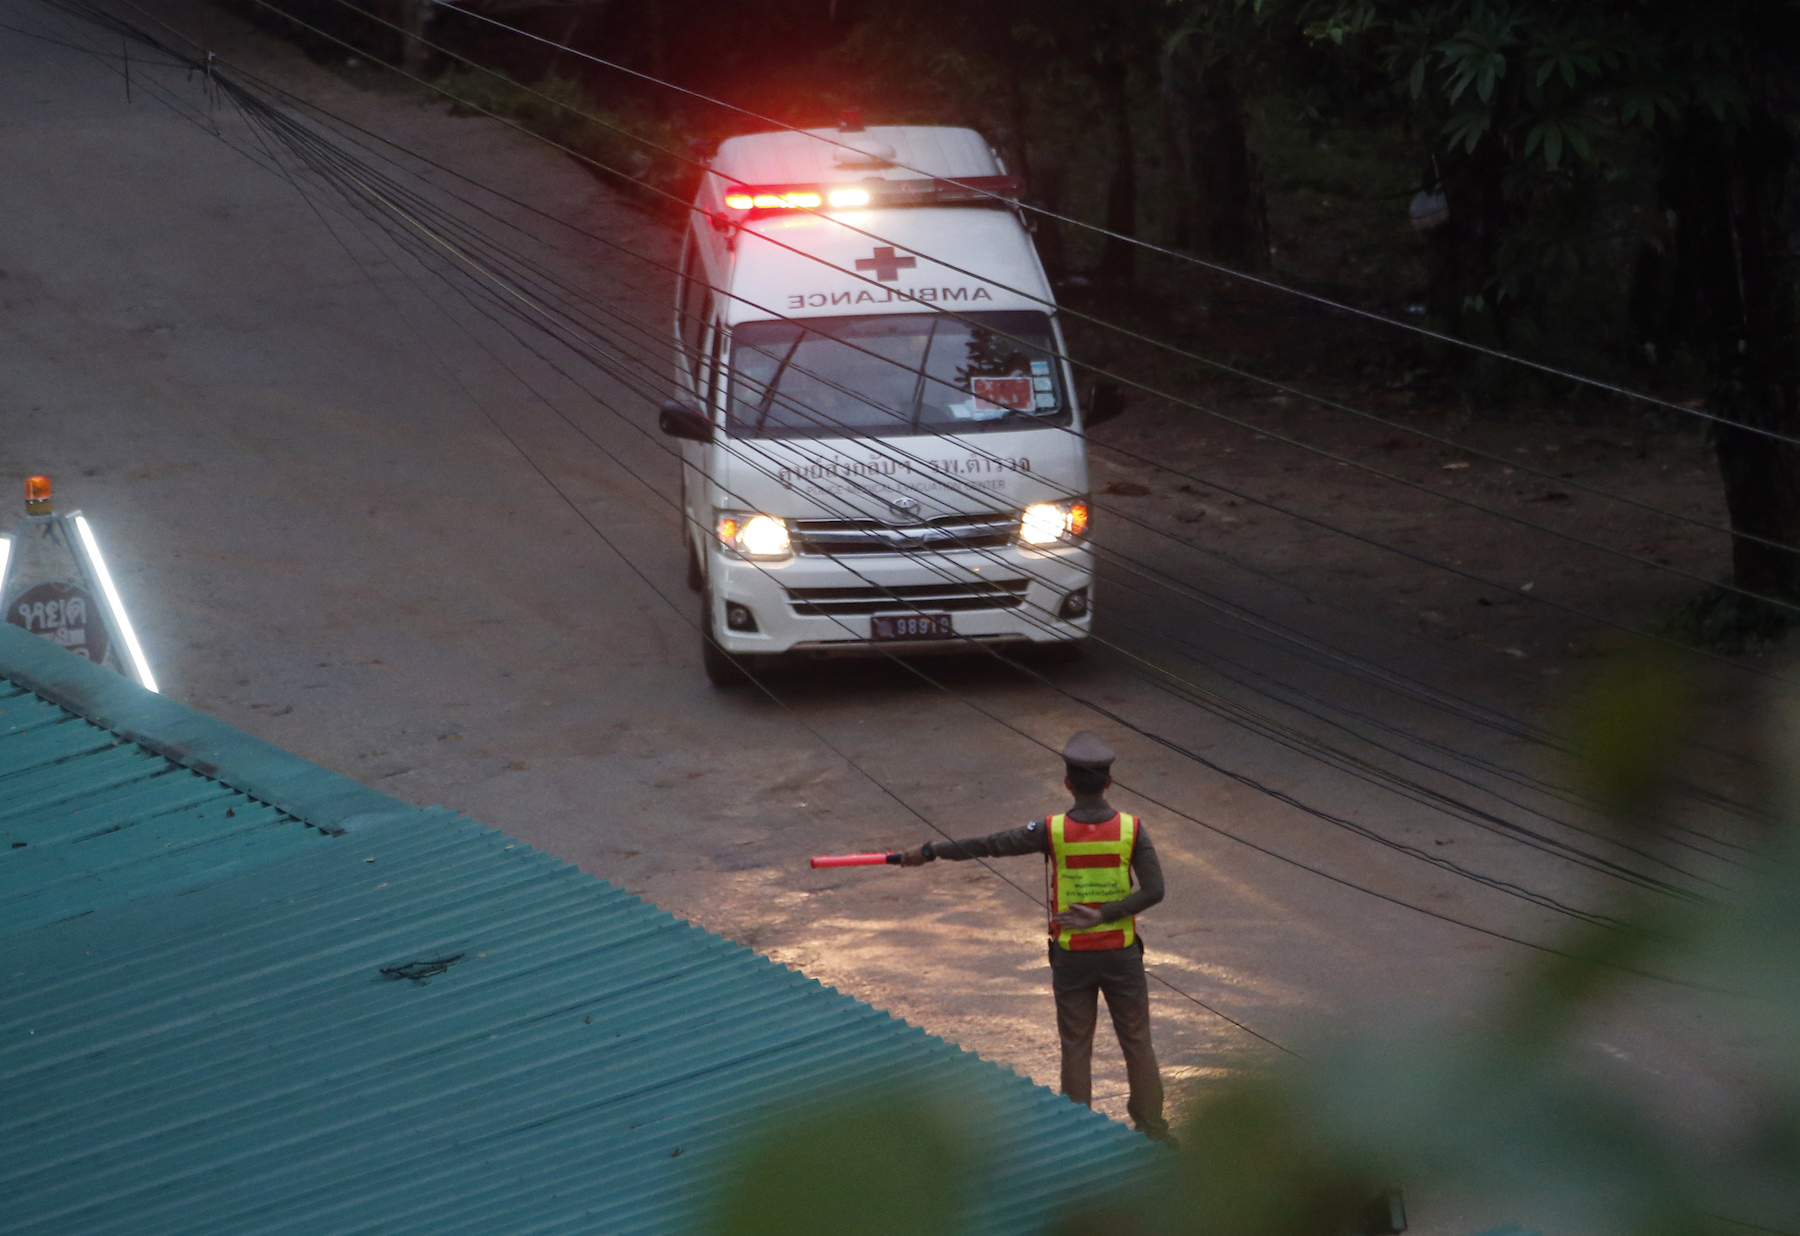 "<div class=""meta image-caption""><div class=""origin-logo origin-image ap""><span>AP</span></div><span class=""caption-text"">Two ambulances are seen leaving the cave in northern Thailand hours after operations began to rescue trapped youth soccer players. (AP Photo/Sakchai Lalit)</span></div>"